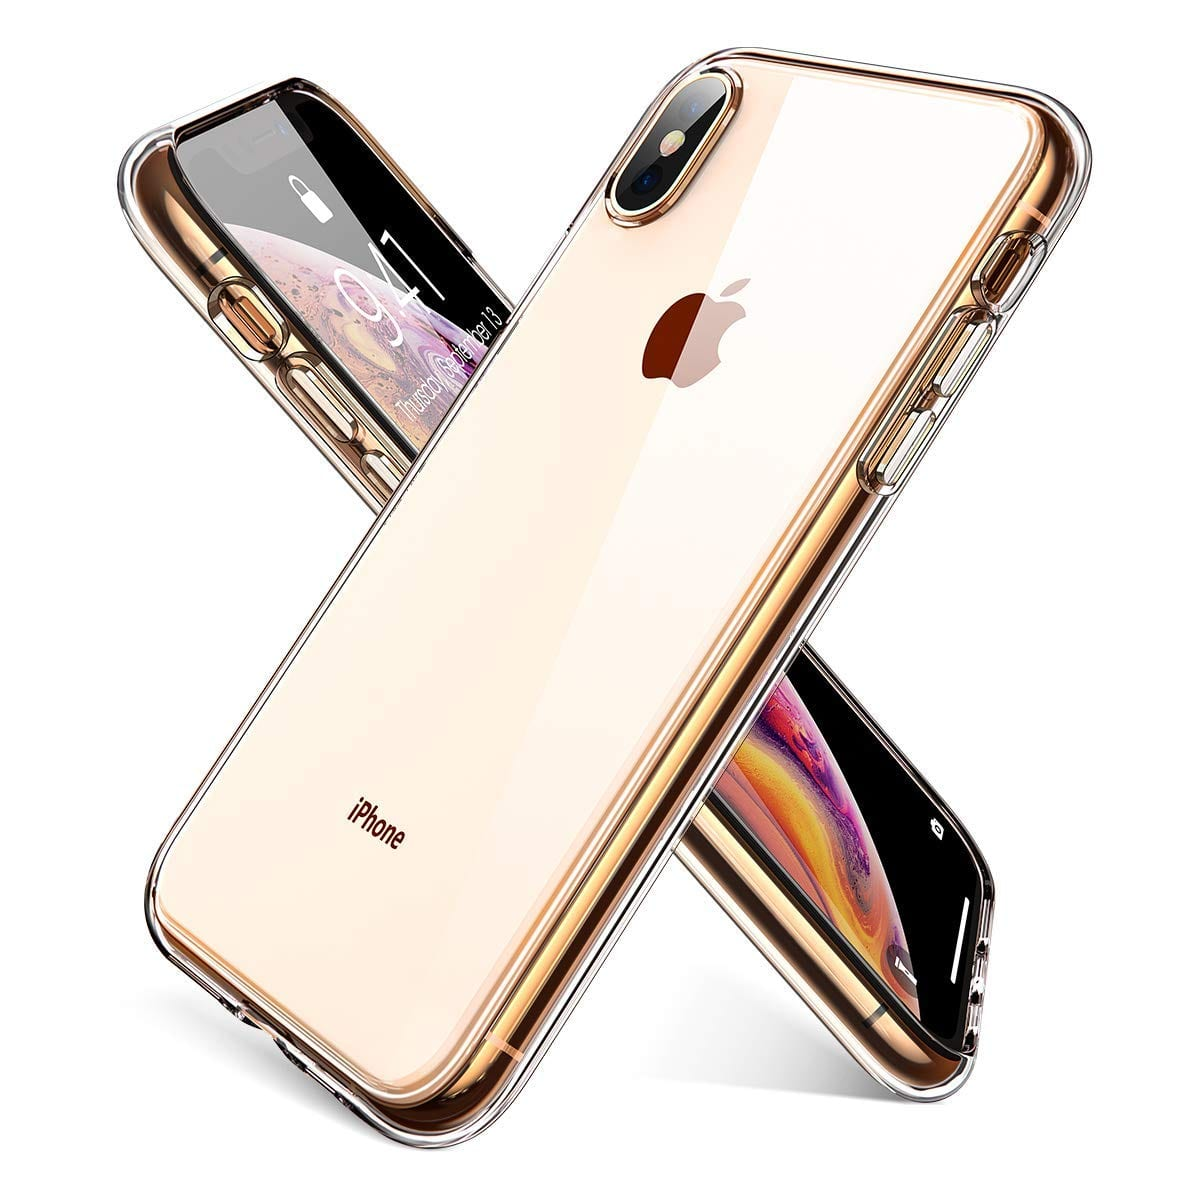 Ainope Crystal Clear iPhone Xs Max/ X Max Case (Anti-Discoloration) $2.90 + Free Shipping